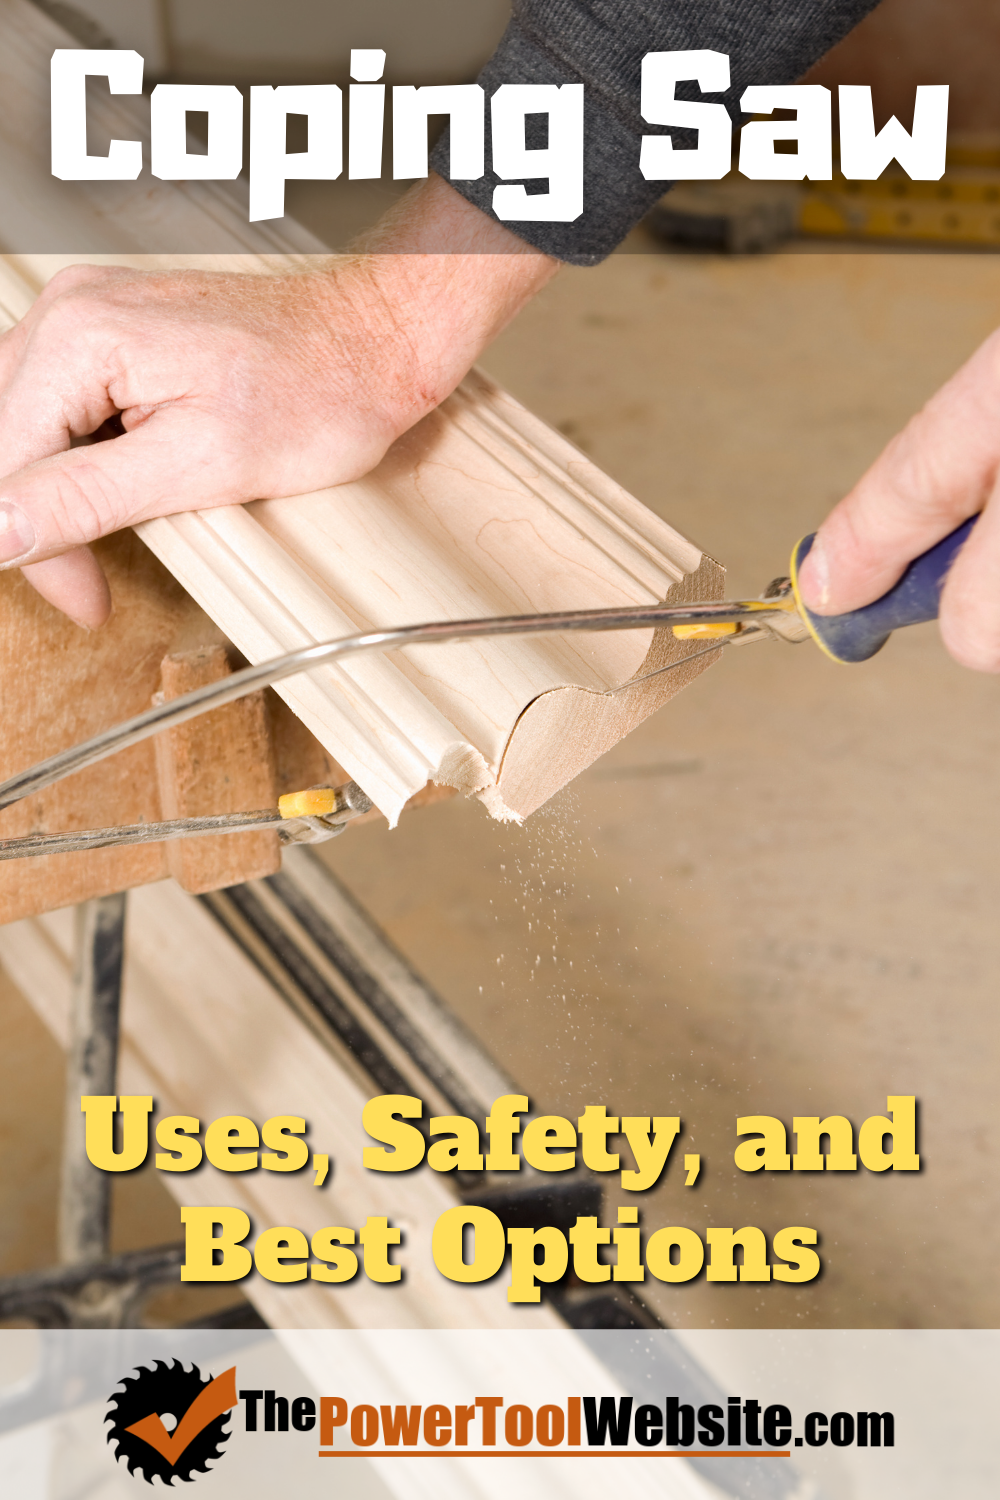 Coping Saw: Uses, Safety and Best Options